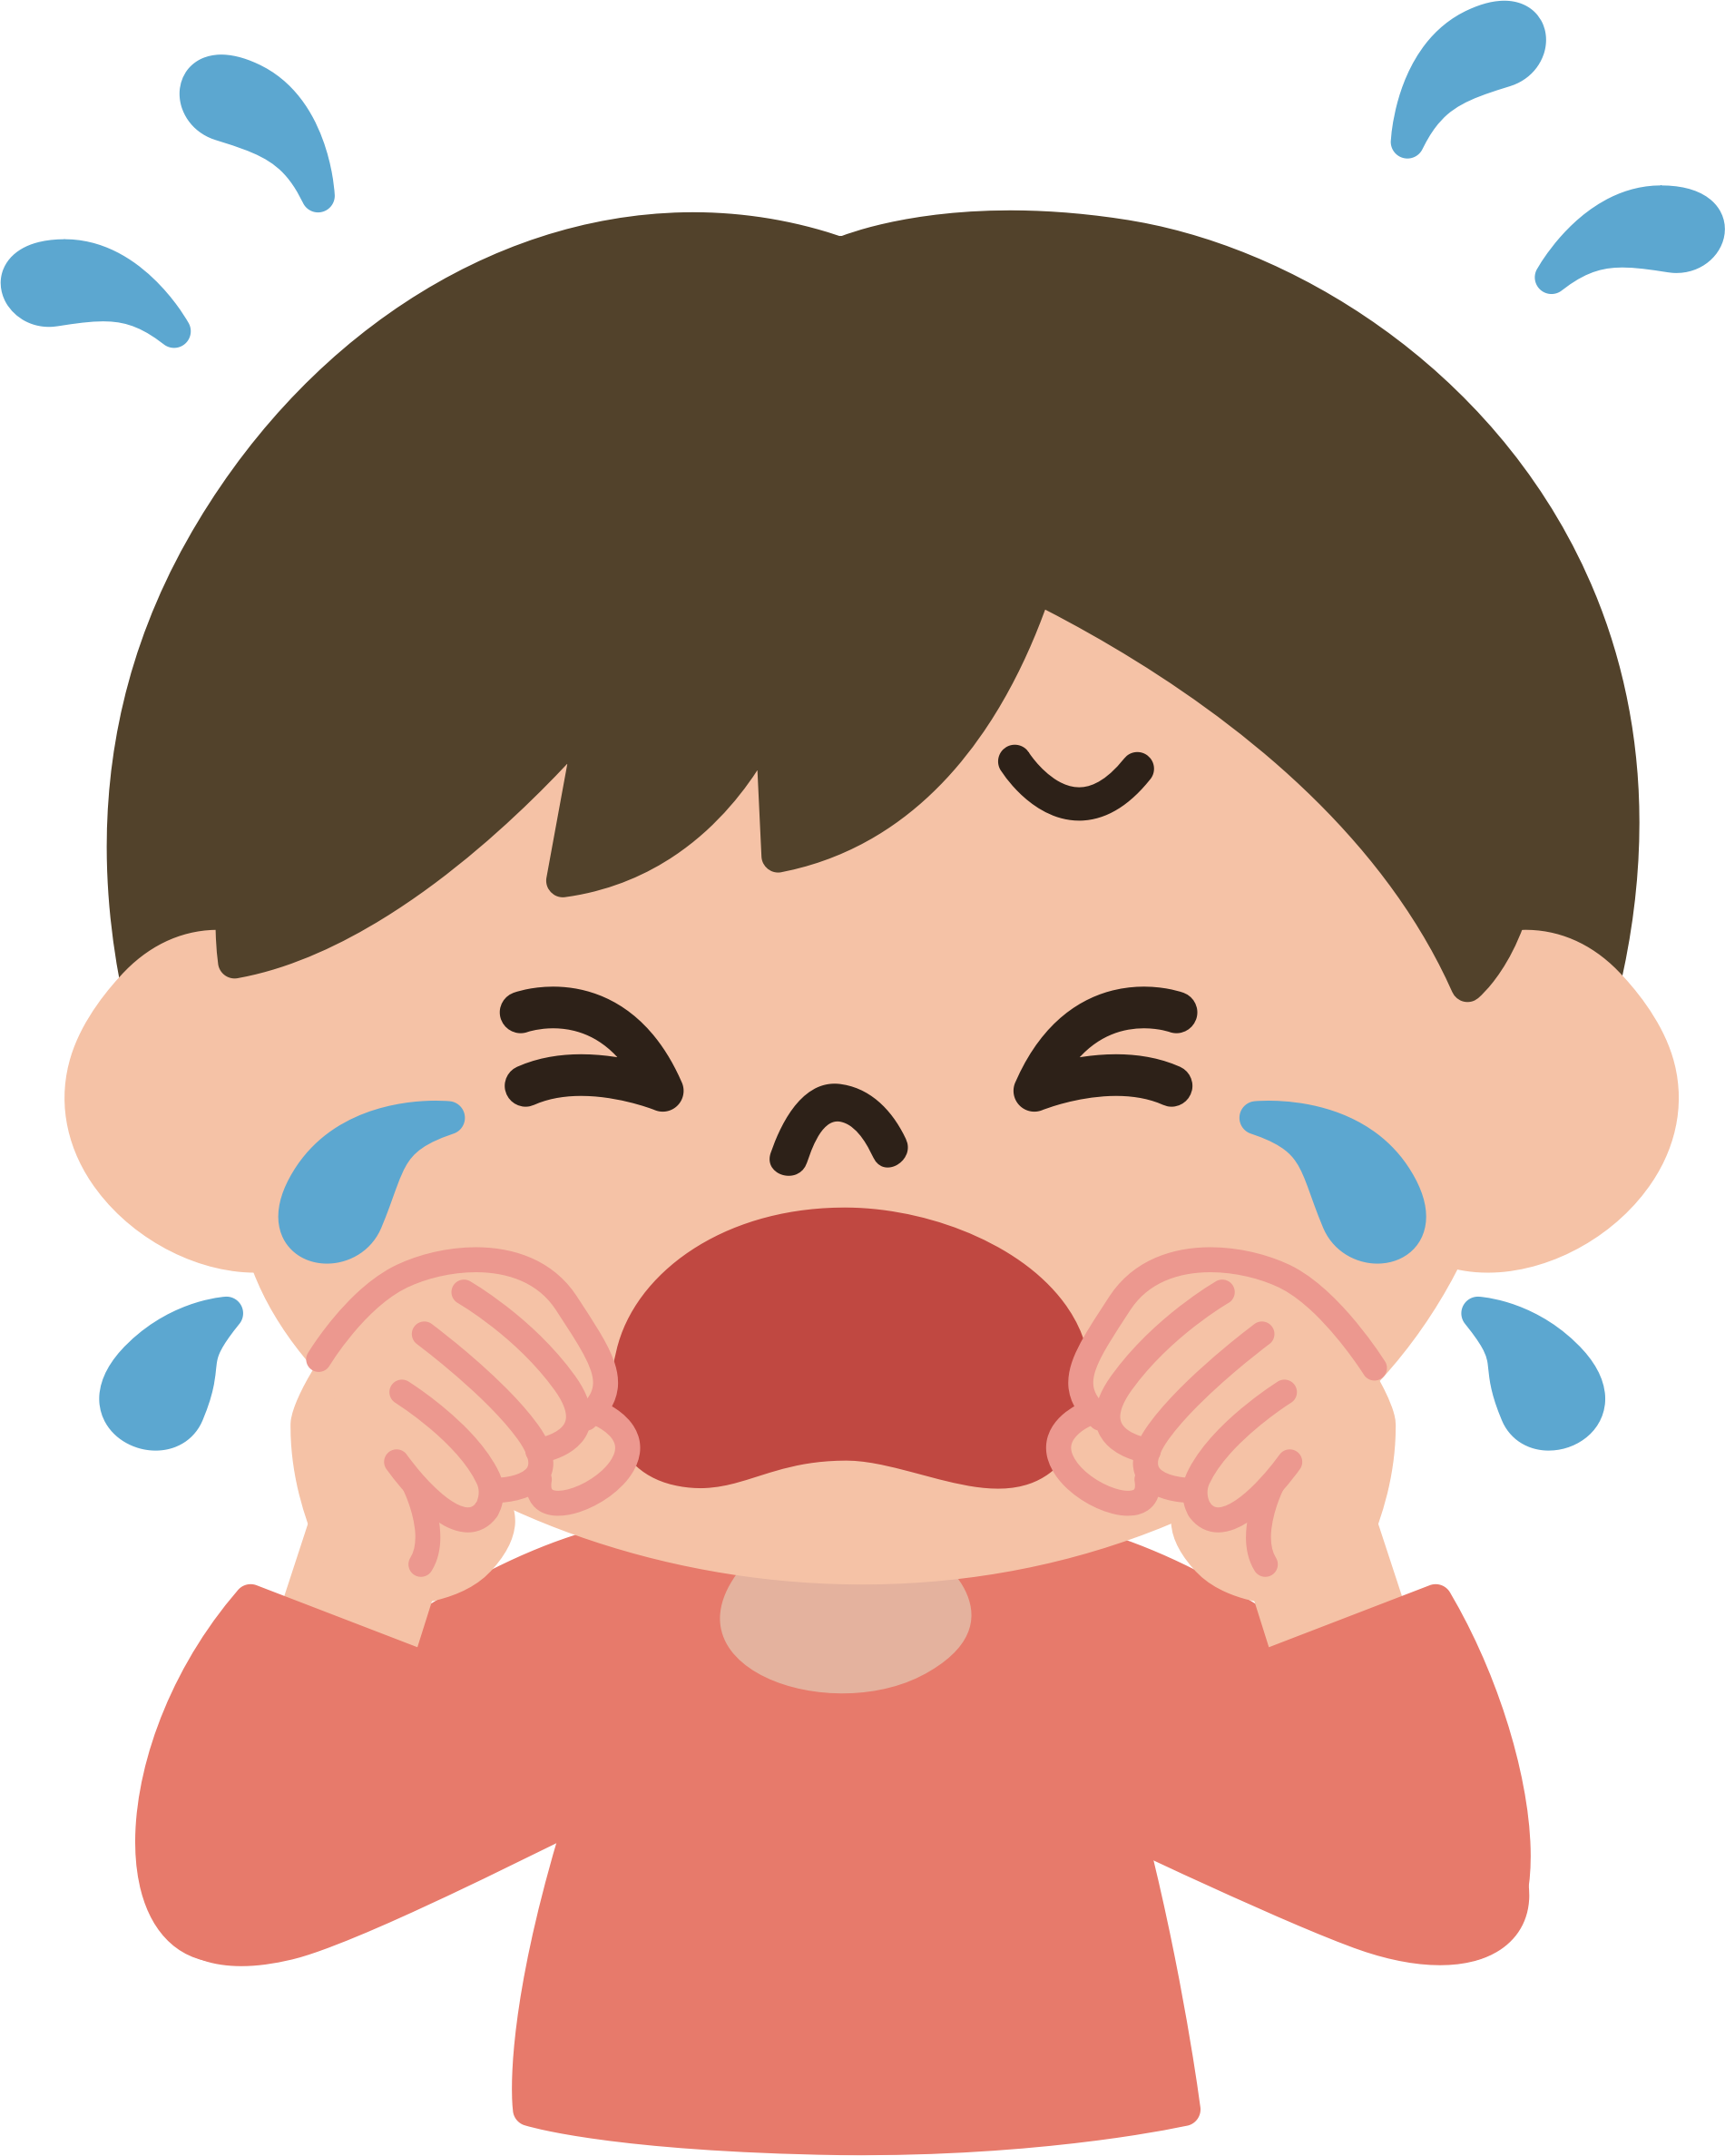 1901x2376 Crying Boy Png Transparent Library Huge Freebie! Download